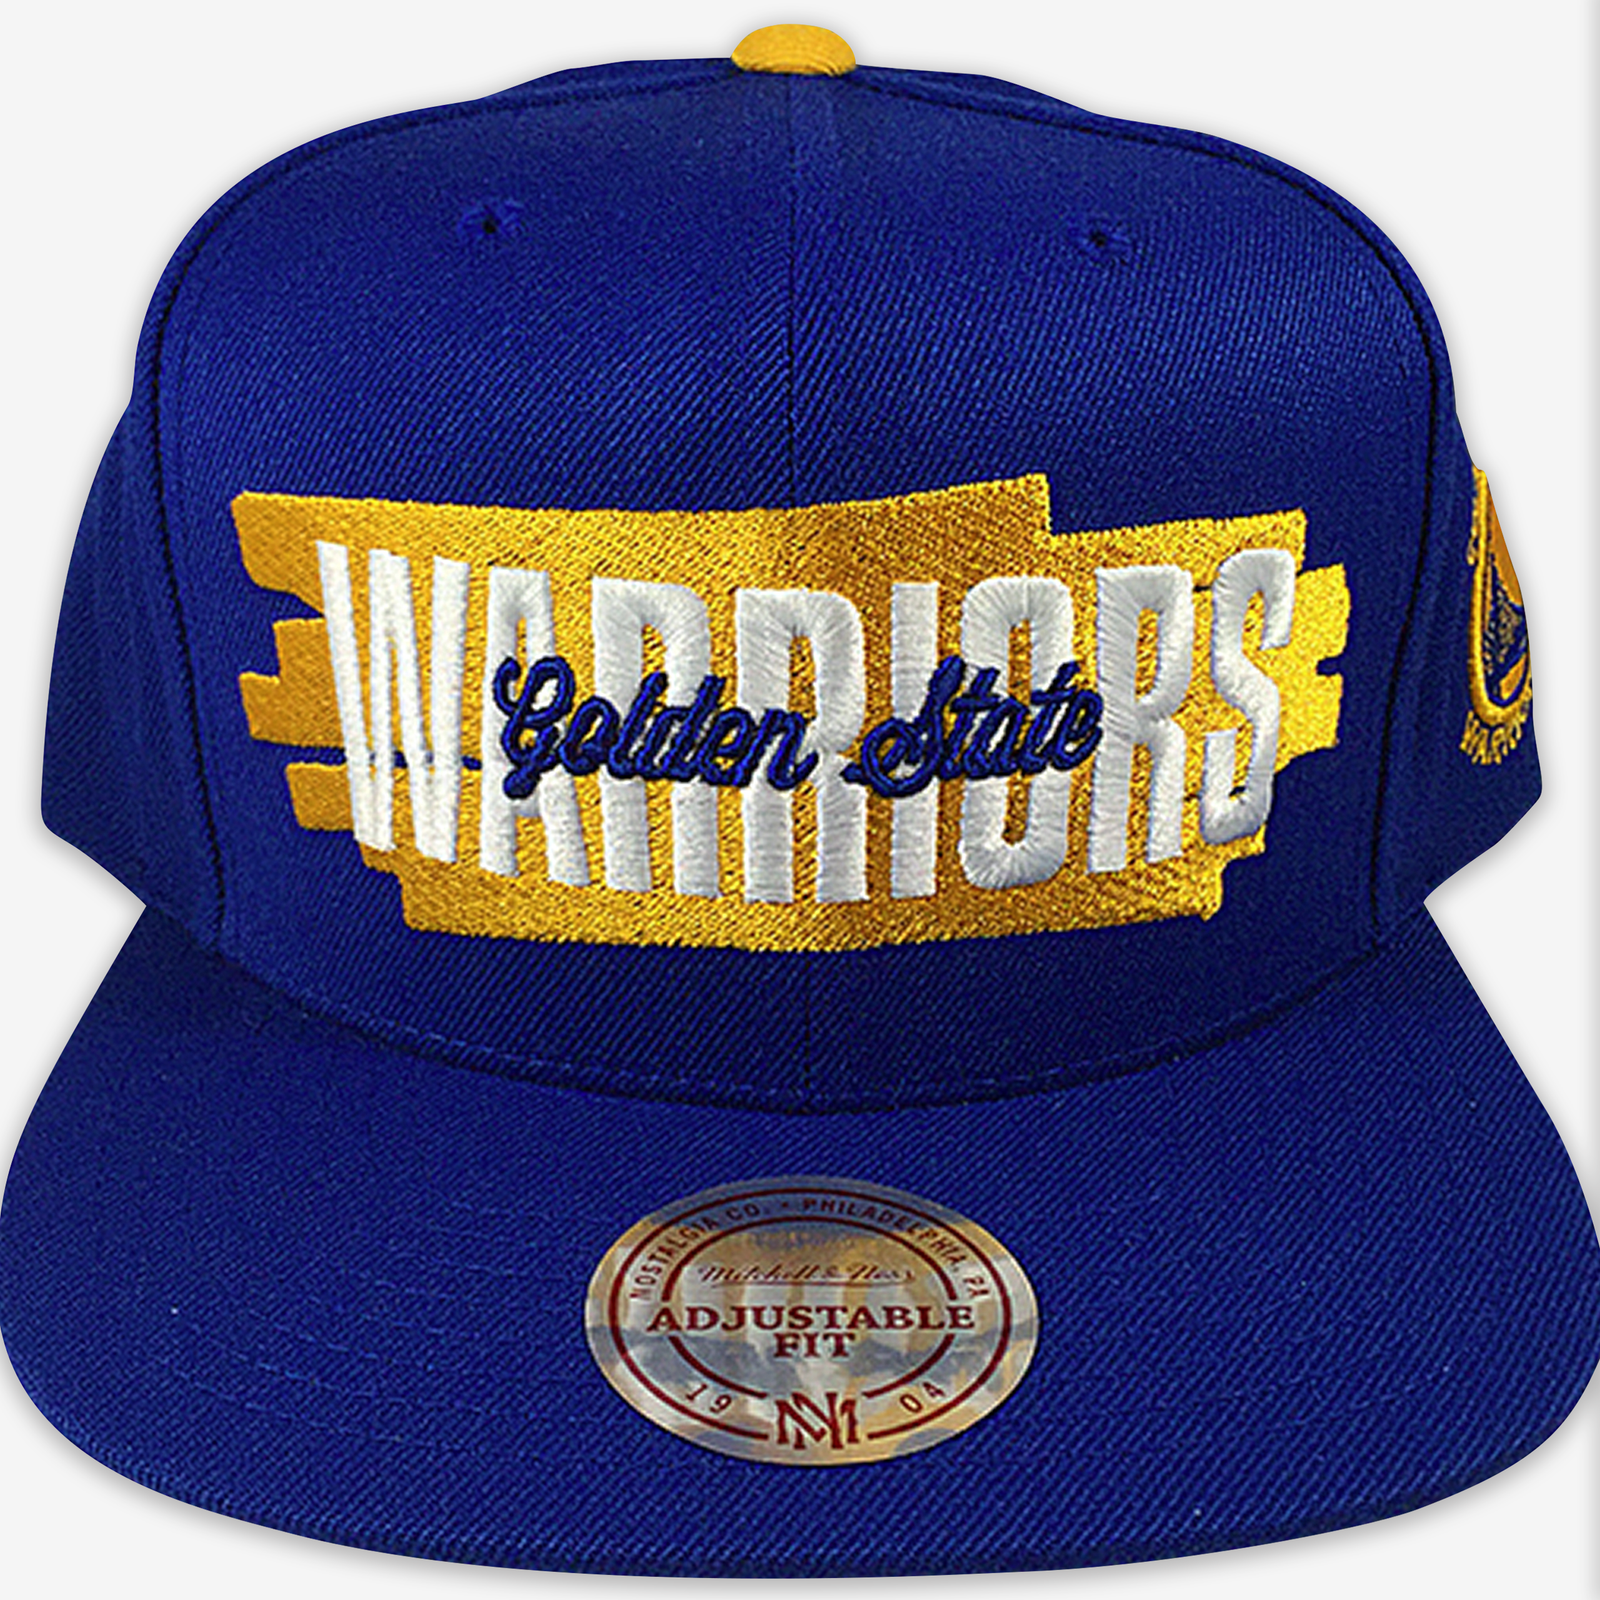 save off 1aa55 28453 france golden state warriors mitchell ness snapback 840c6 c24d5